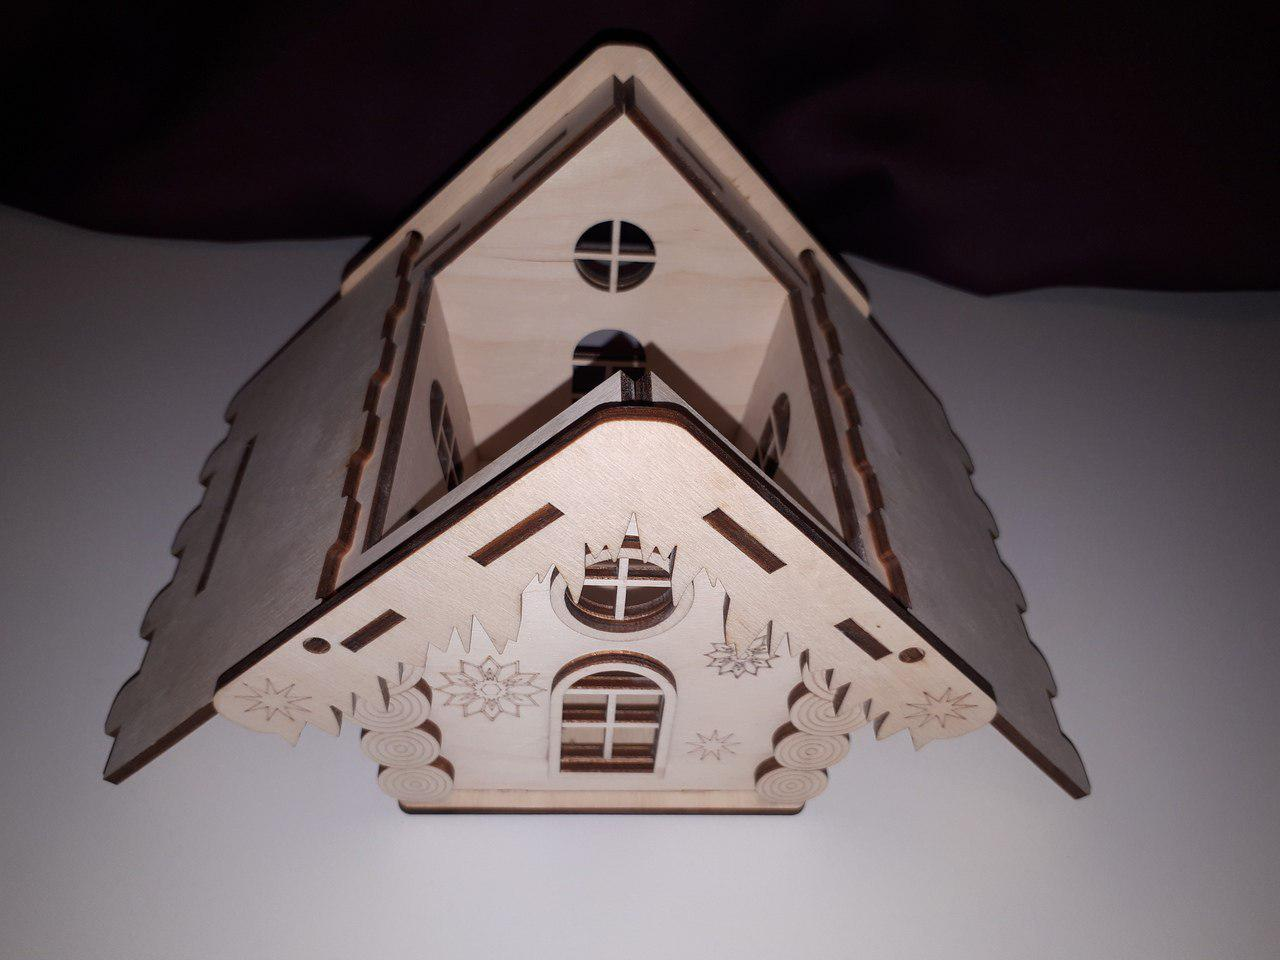 Christmas House Design Cutting And Laser Engraving Free CDR Vectors Art